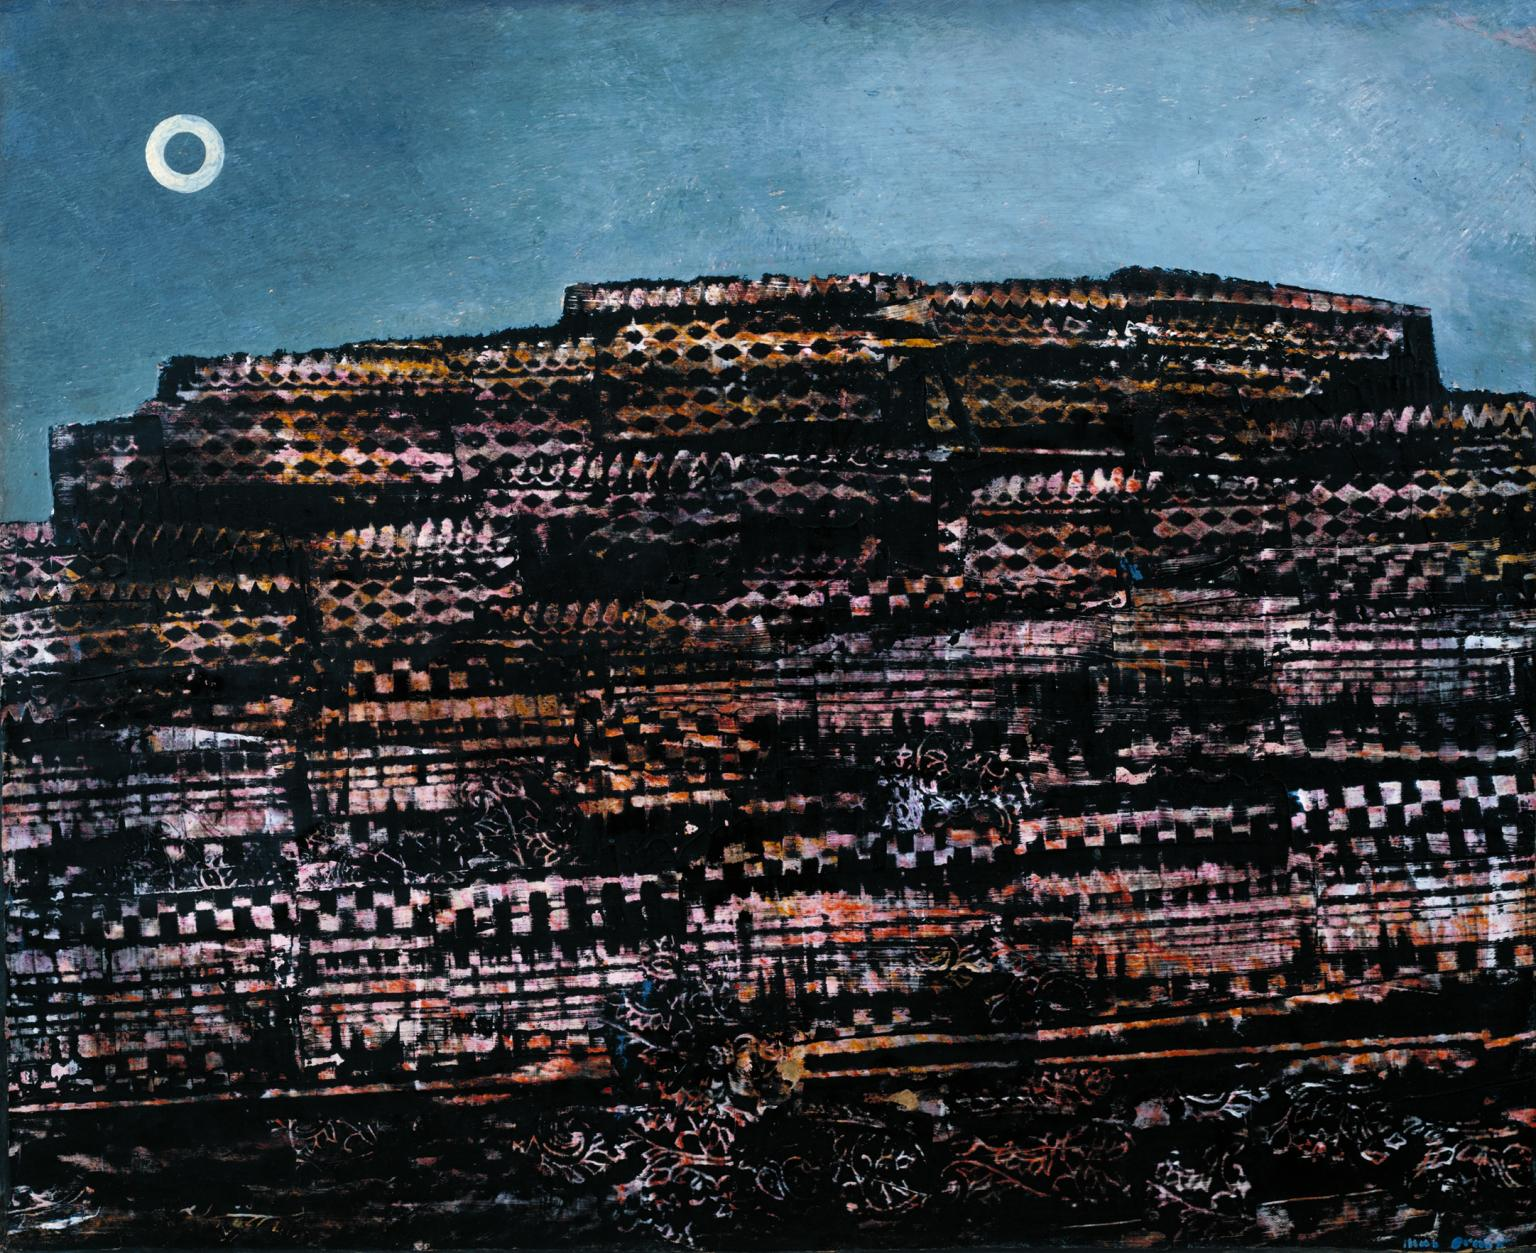 Max Ernst, <em>La Ville entière (The Entire City)</em>, 1935. Oil on paper mounted on canvas, 19 3/4 x 24 1/8 (50 x 61.5).